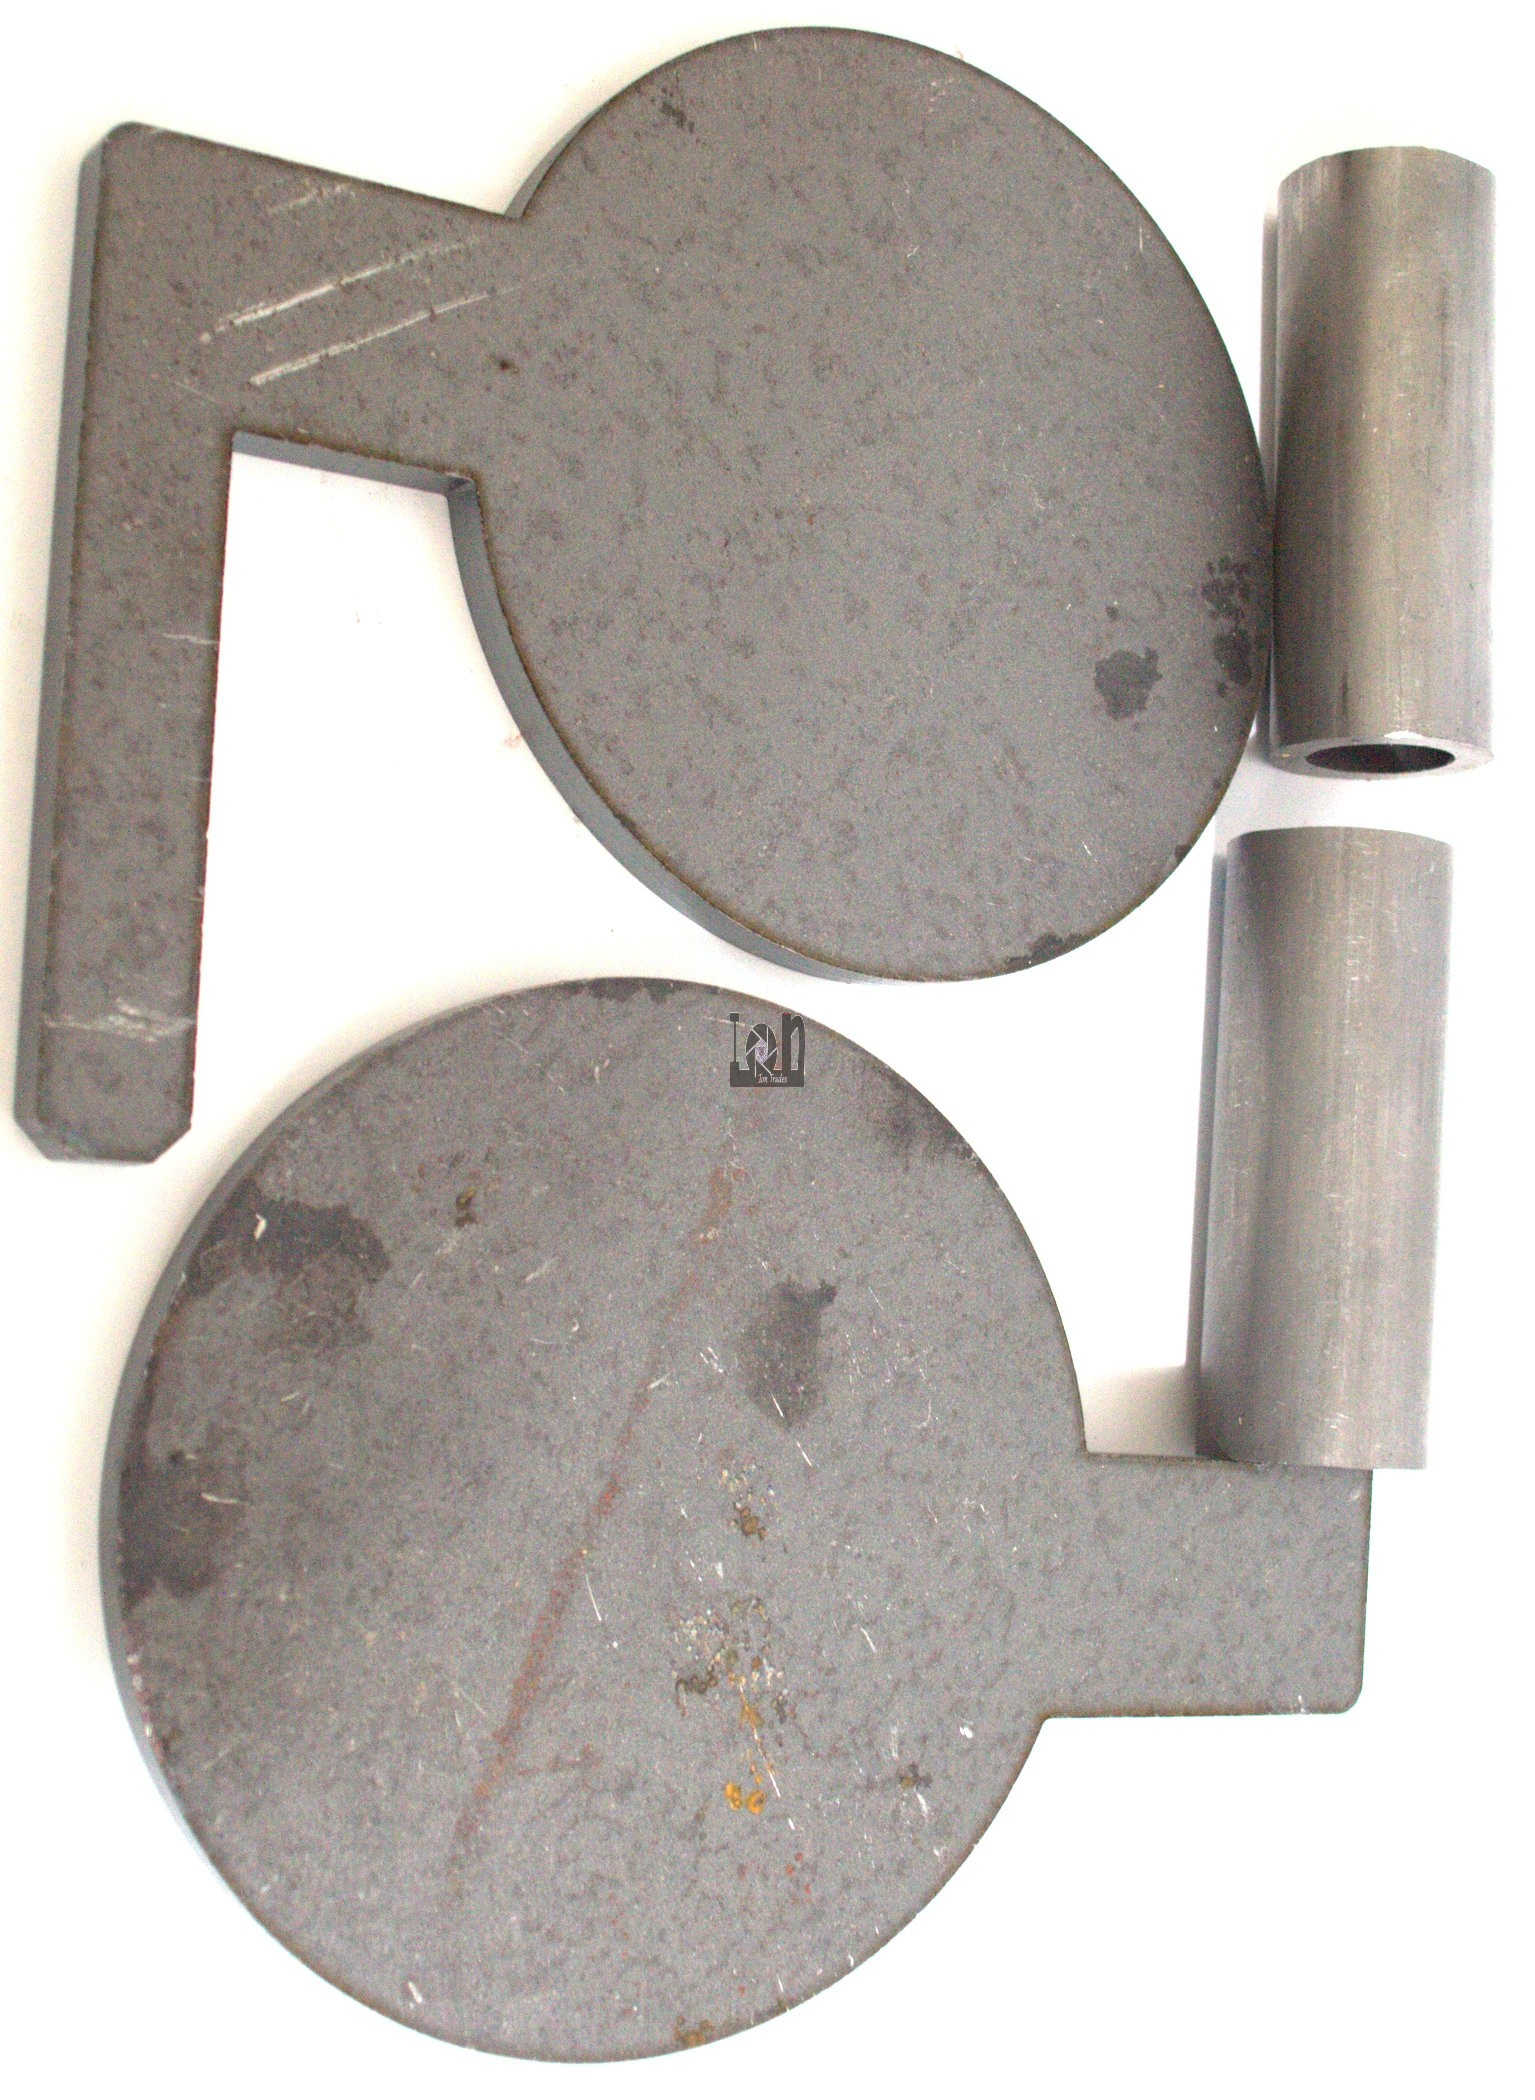 "Lot  6"" Steel Dueling Target Tree Targets and Tubes 3/8"" Paddles DIY"